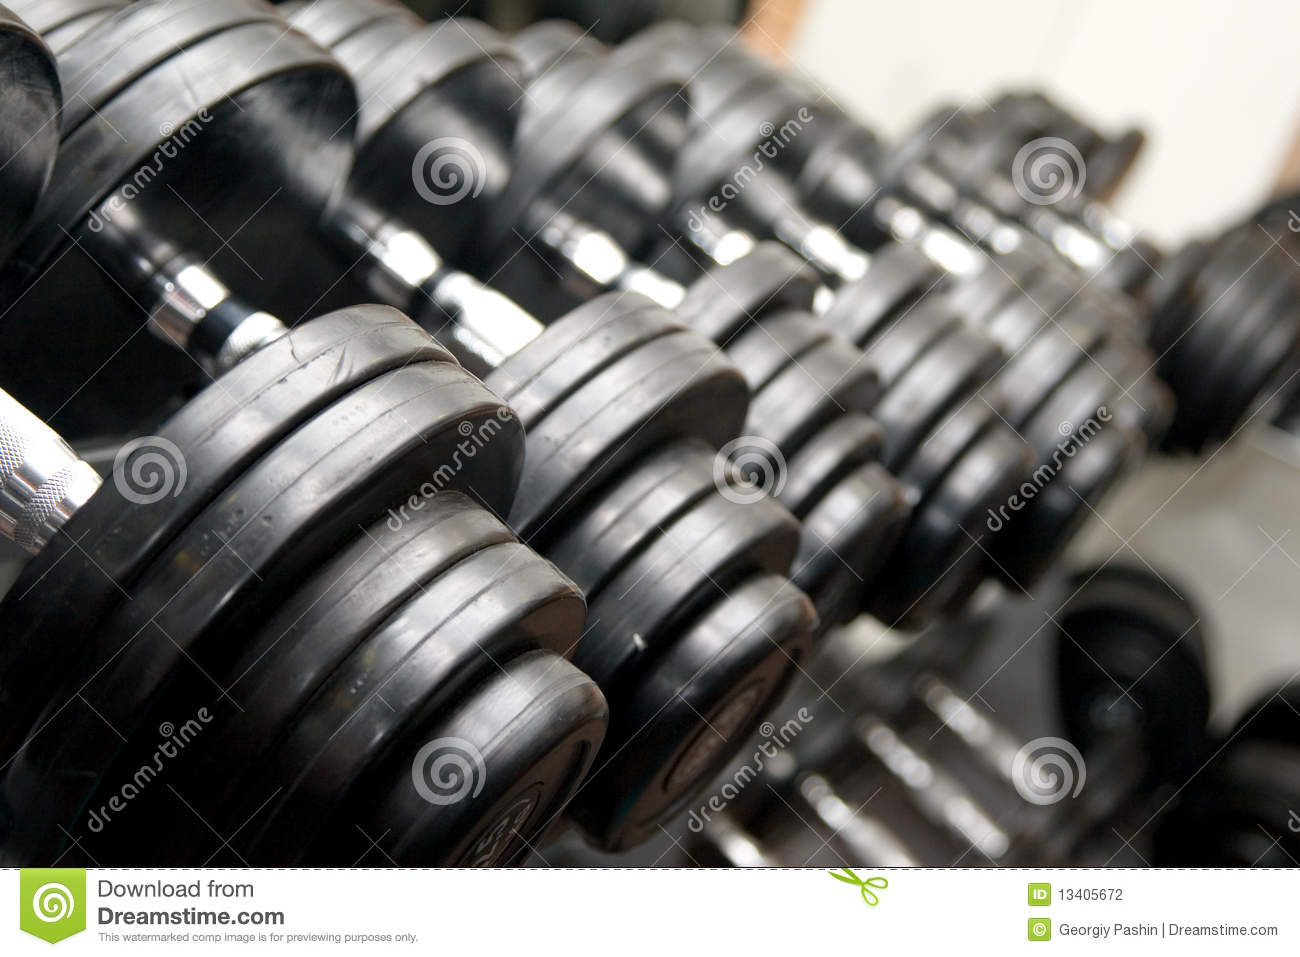 Black Barbells at the gym